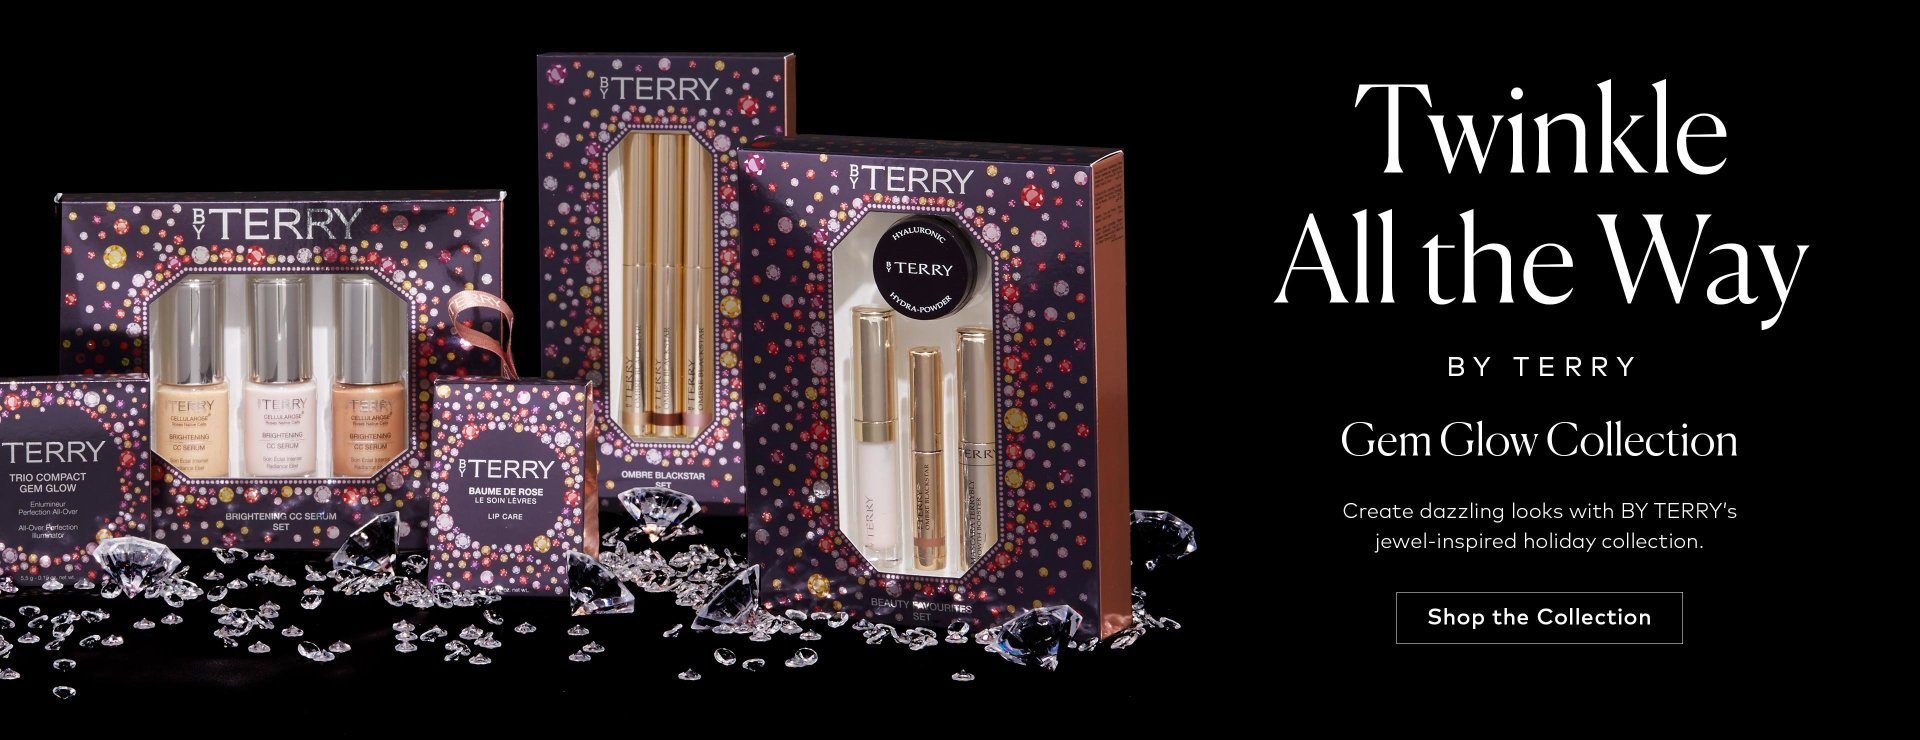 Shop BY TERRY's Gem Glow Collection.